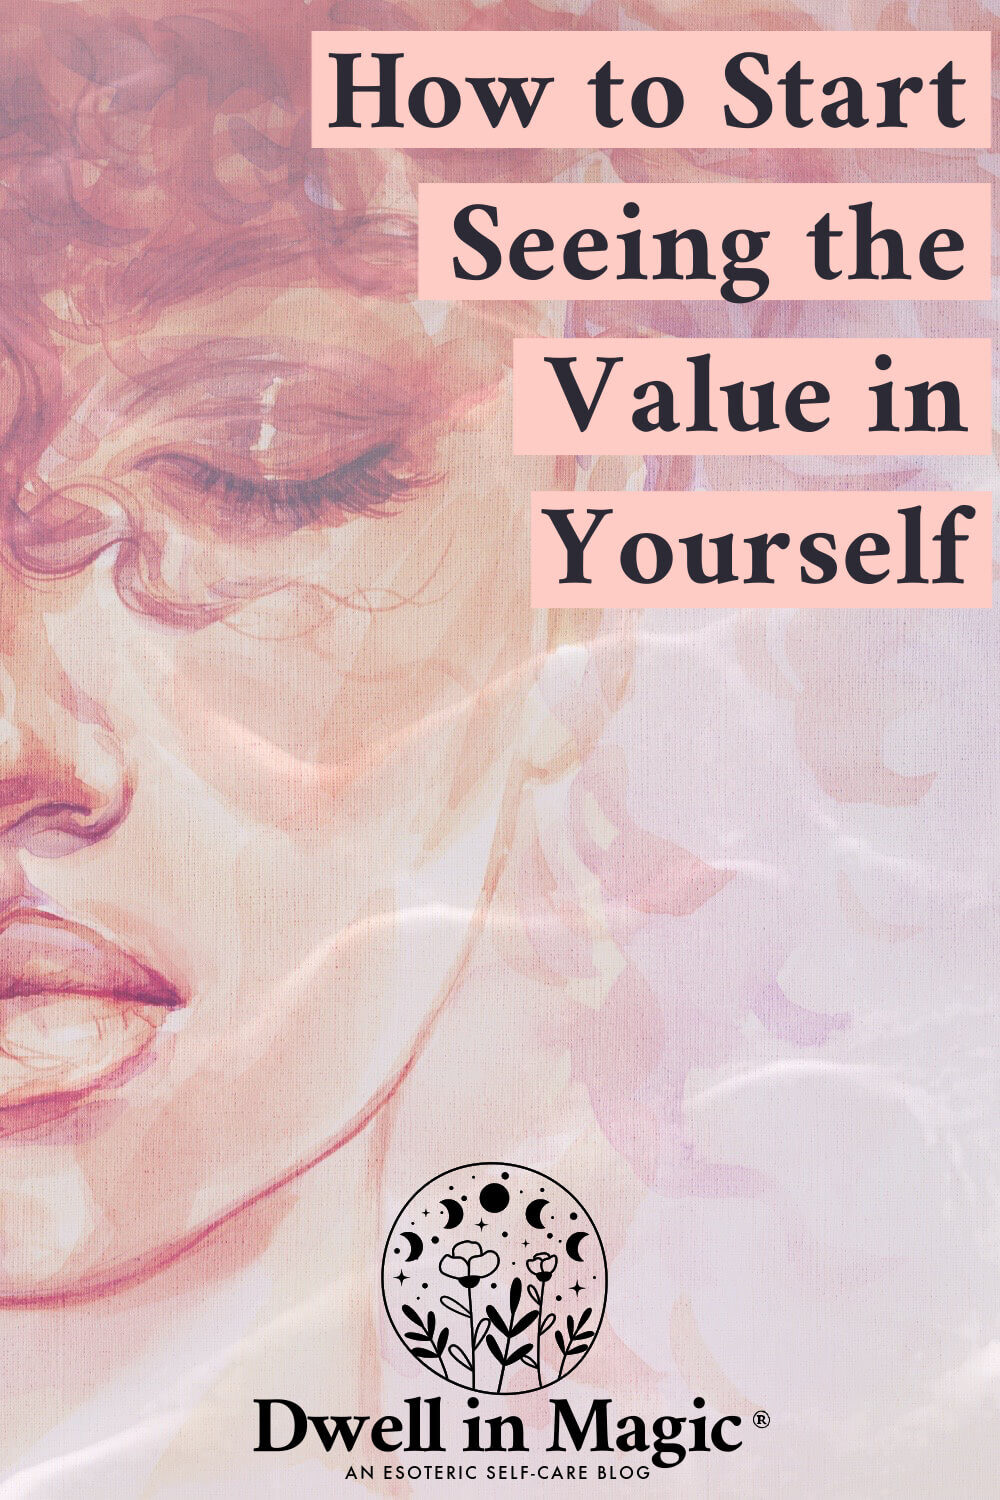 How to start seeing the value in yourself